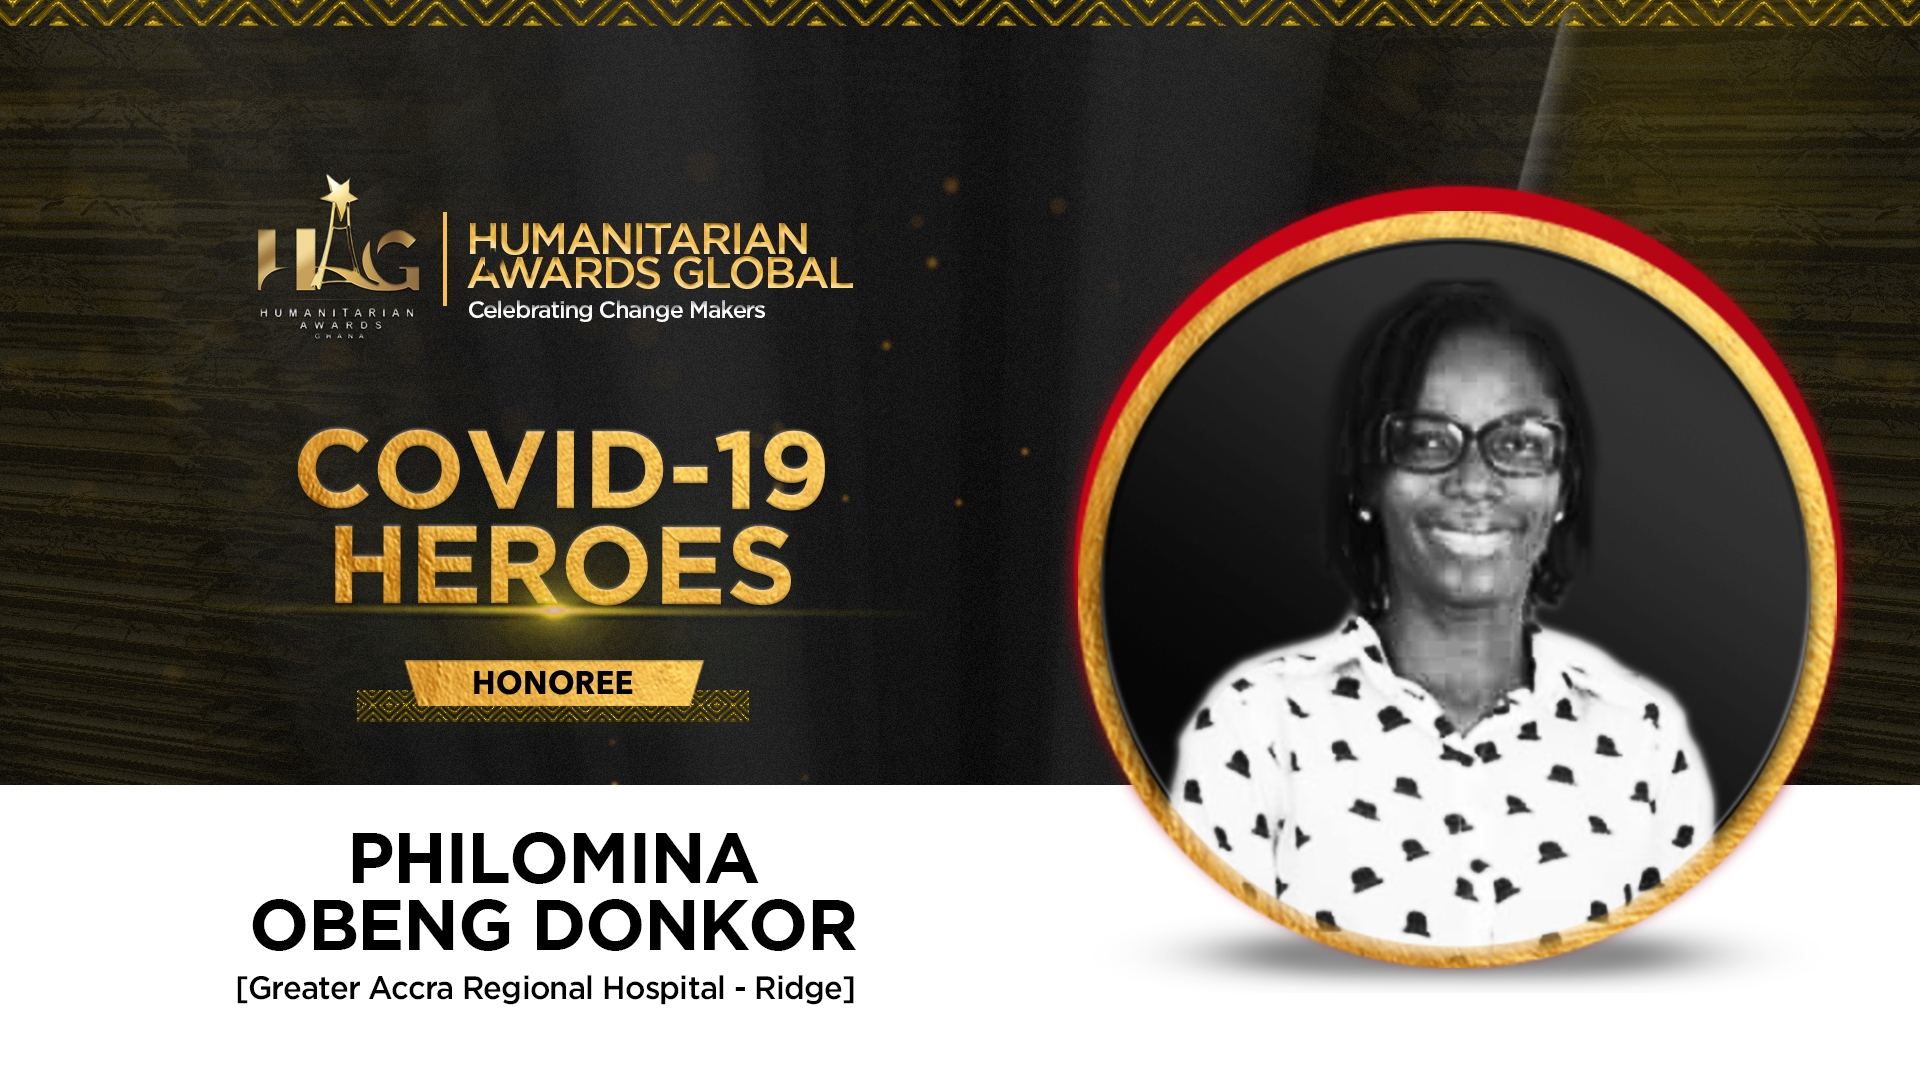 Philomina Obeng Donkor of Greater Accra Ridge -Hospital to be honoured by Humanitarian Awards Global